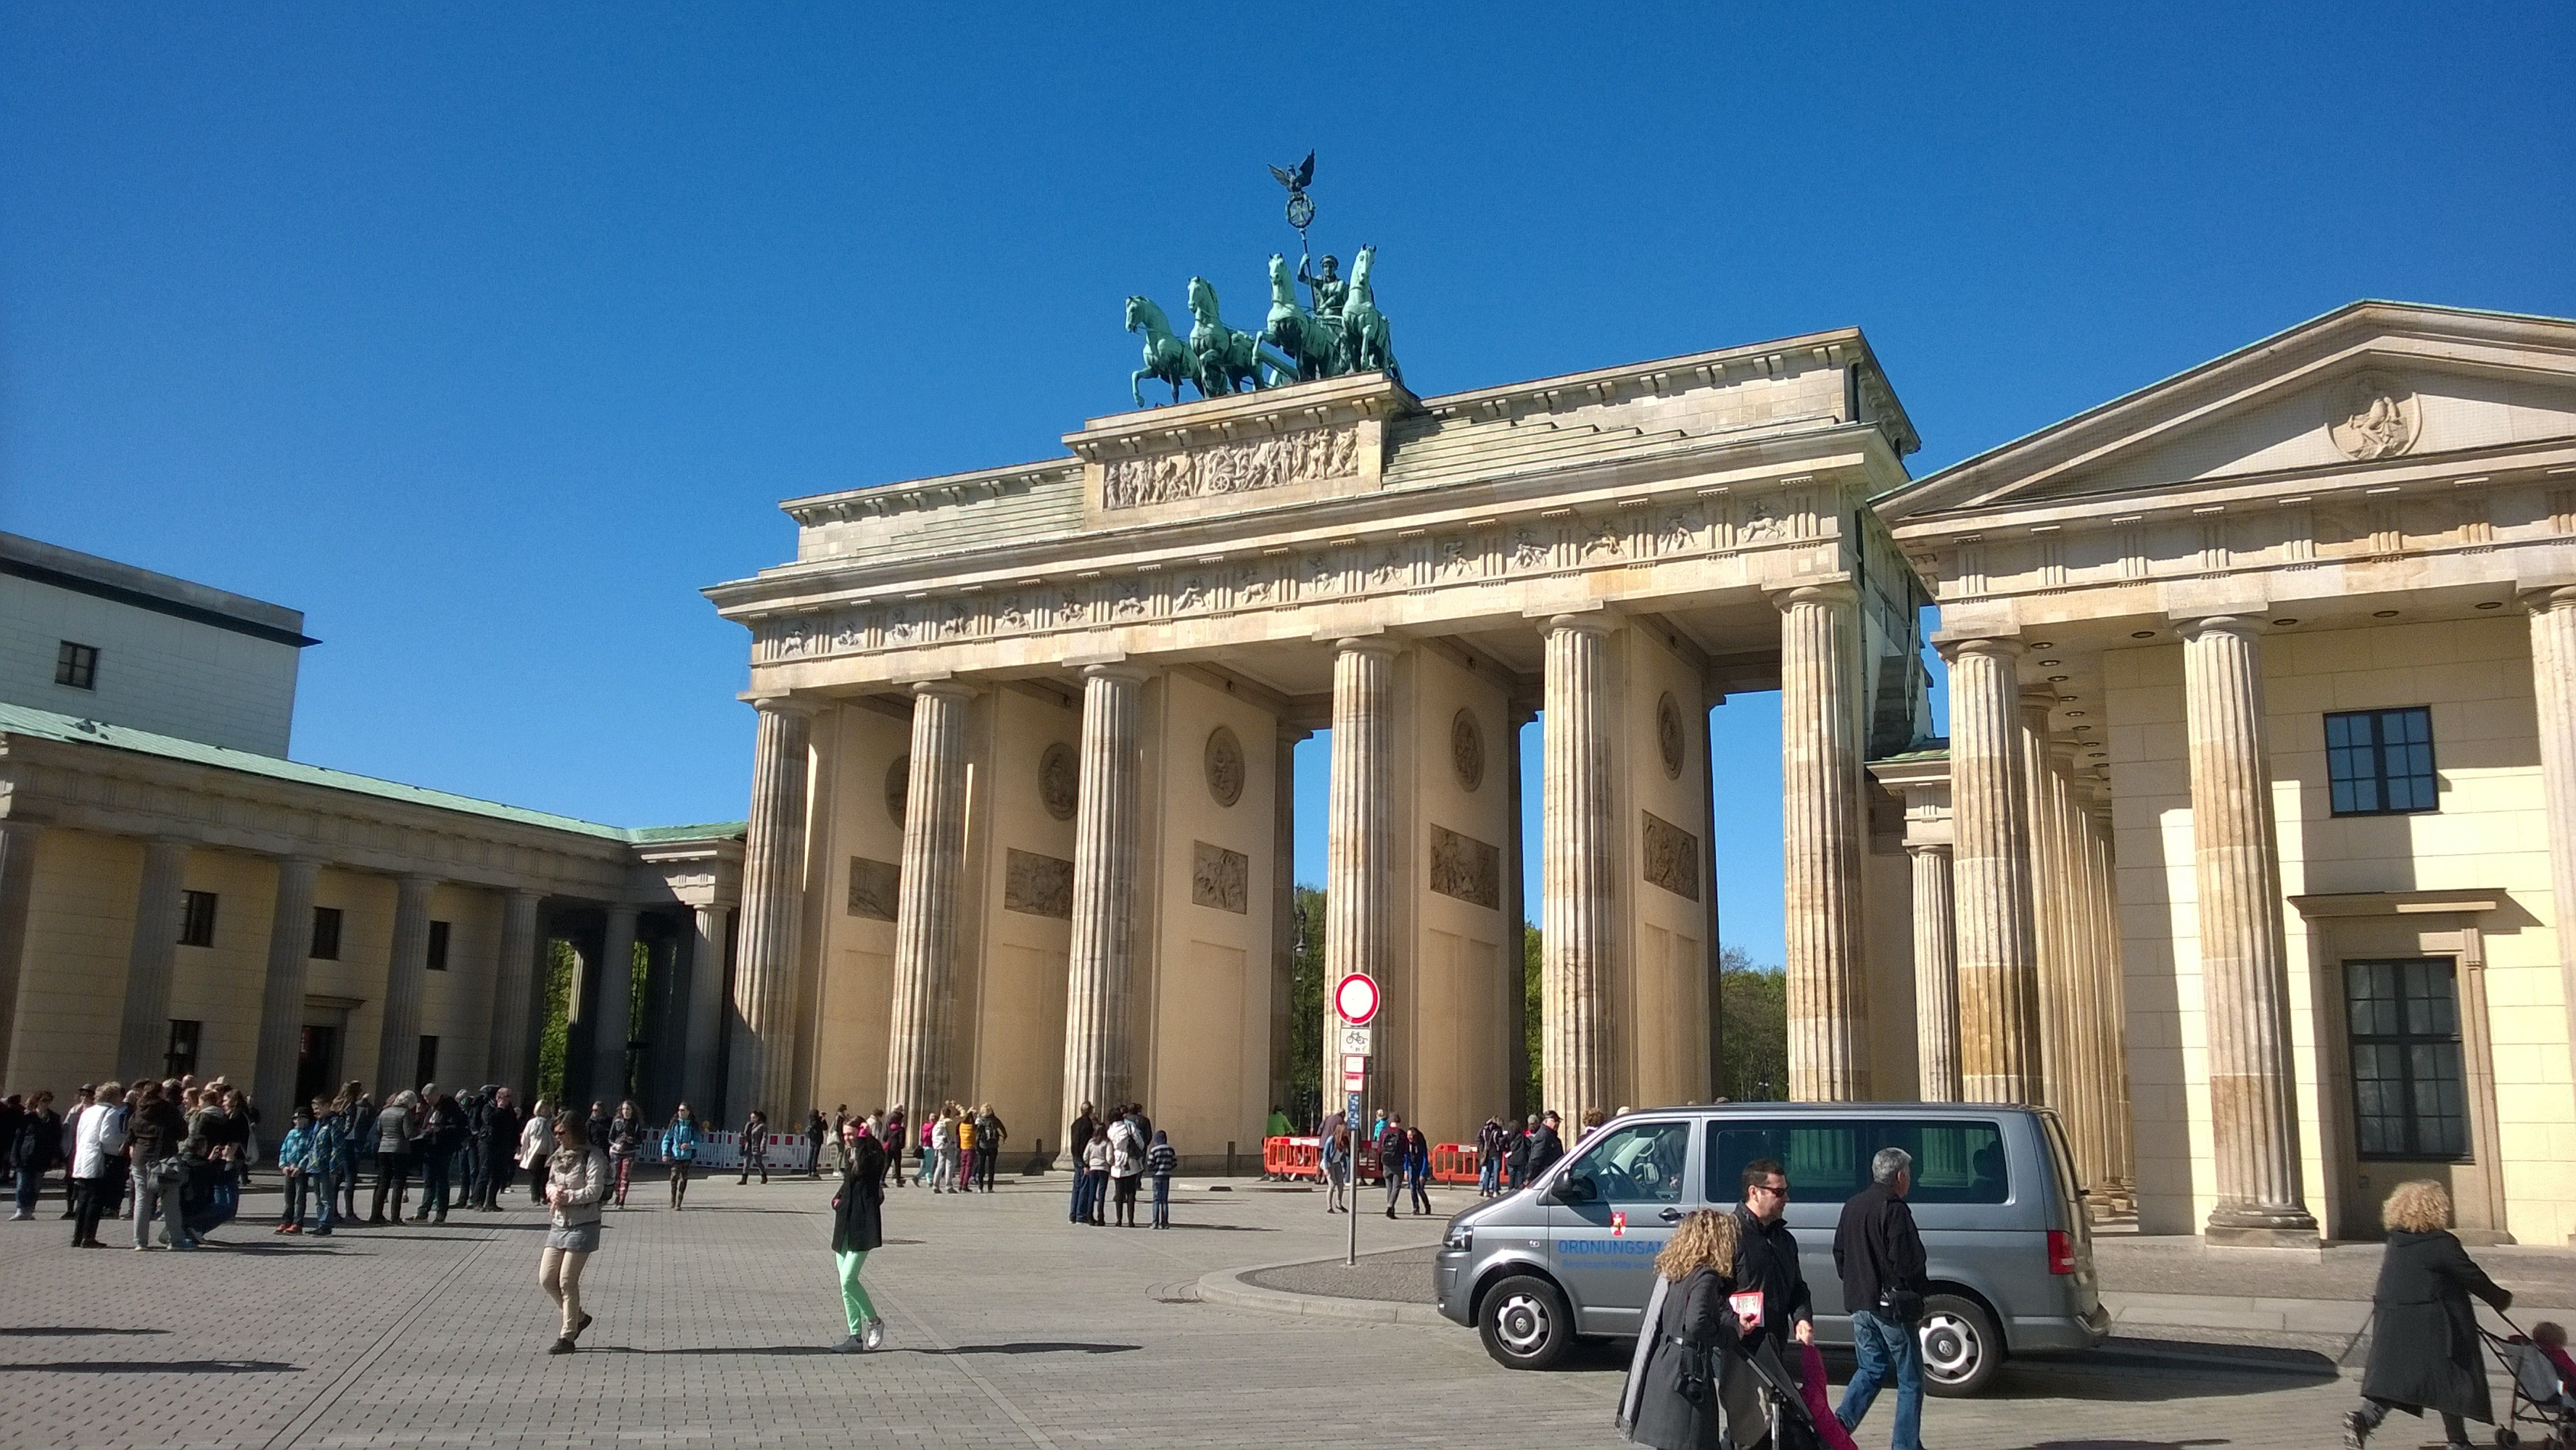 brandenburg gate in germany during daytime free image